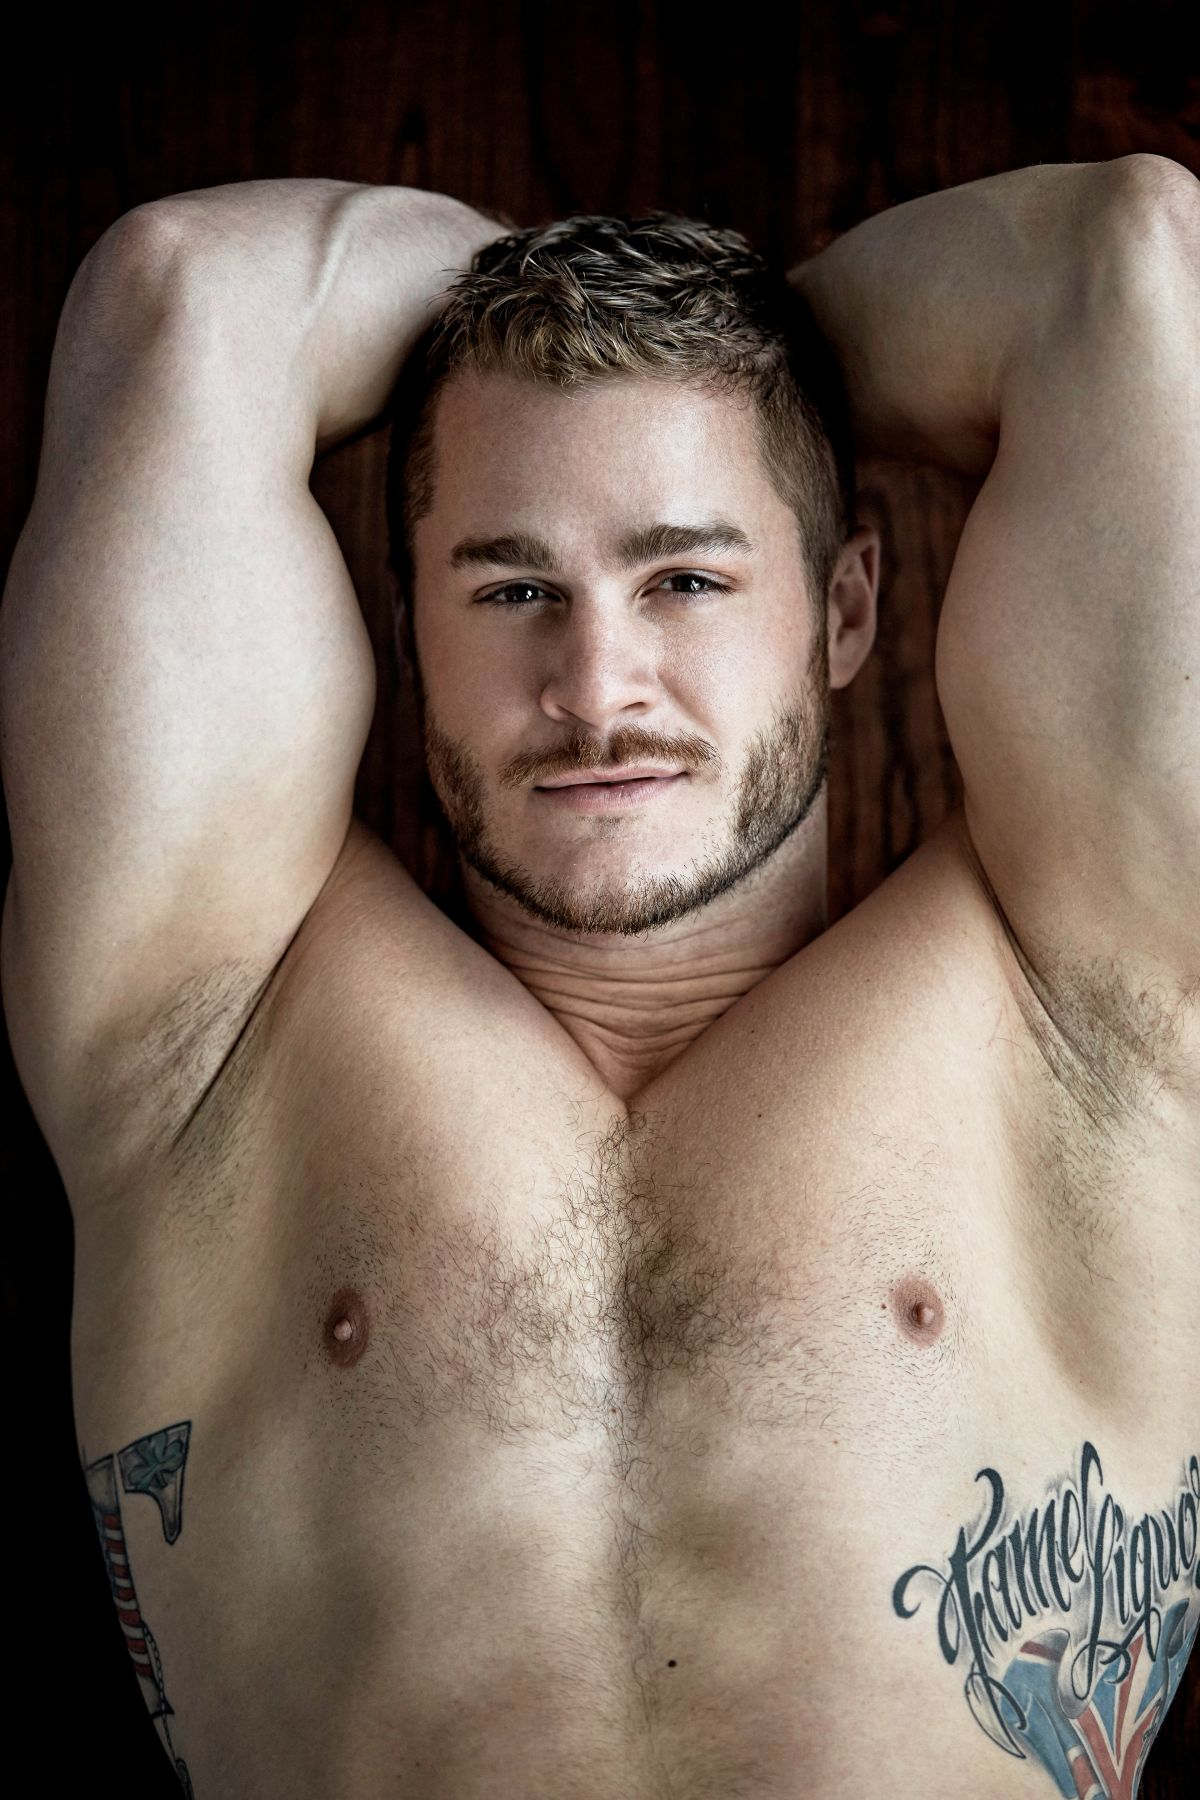 Free Austinarmacost onlyfans onlyfans leaked